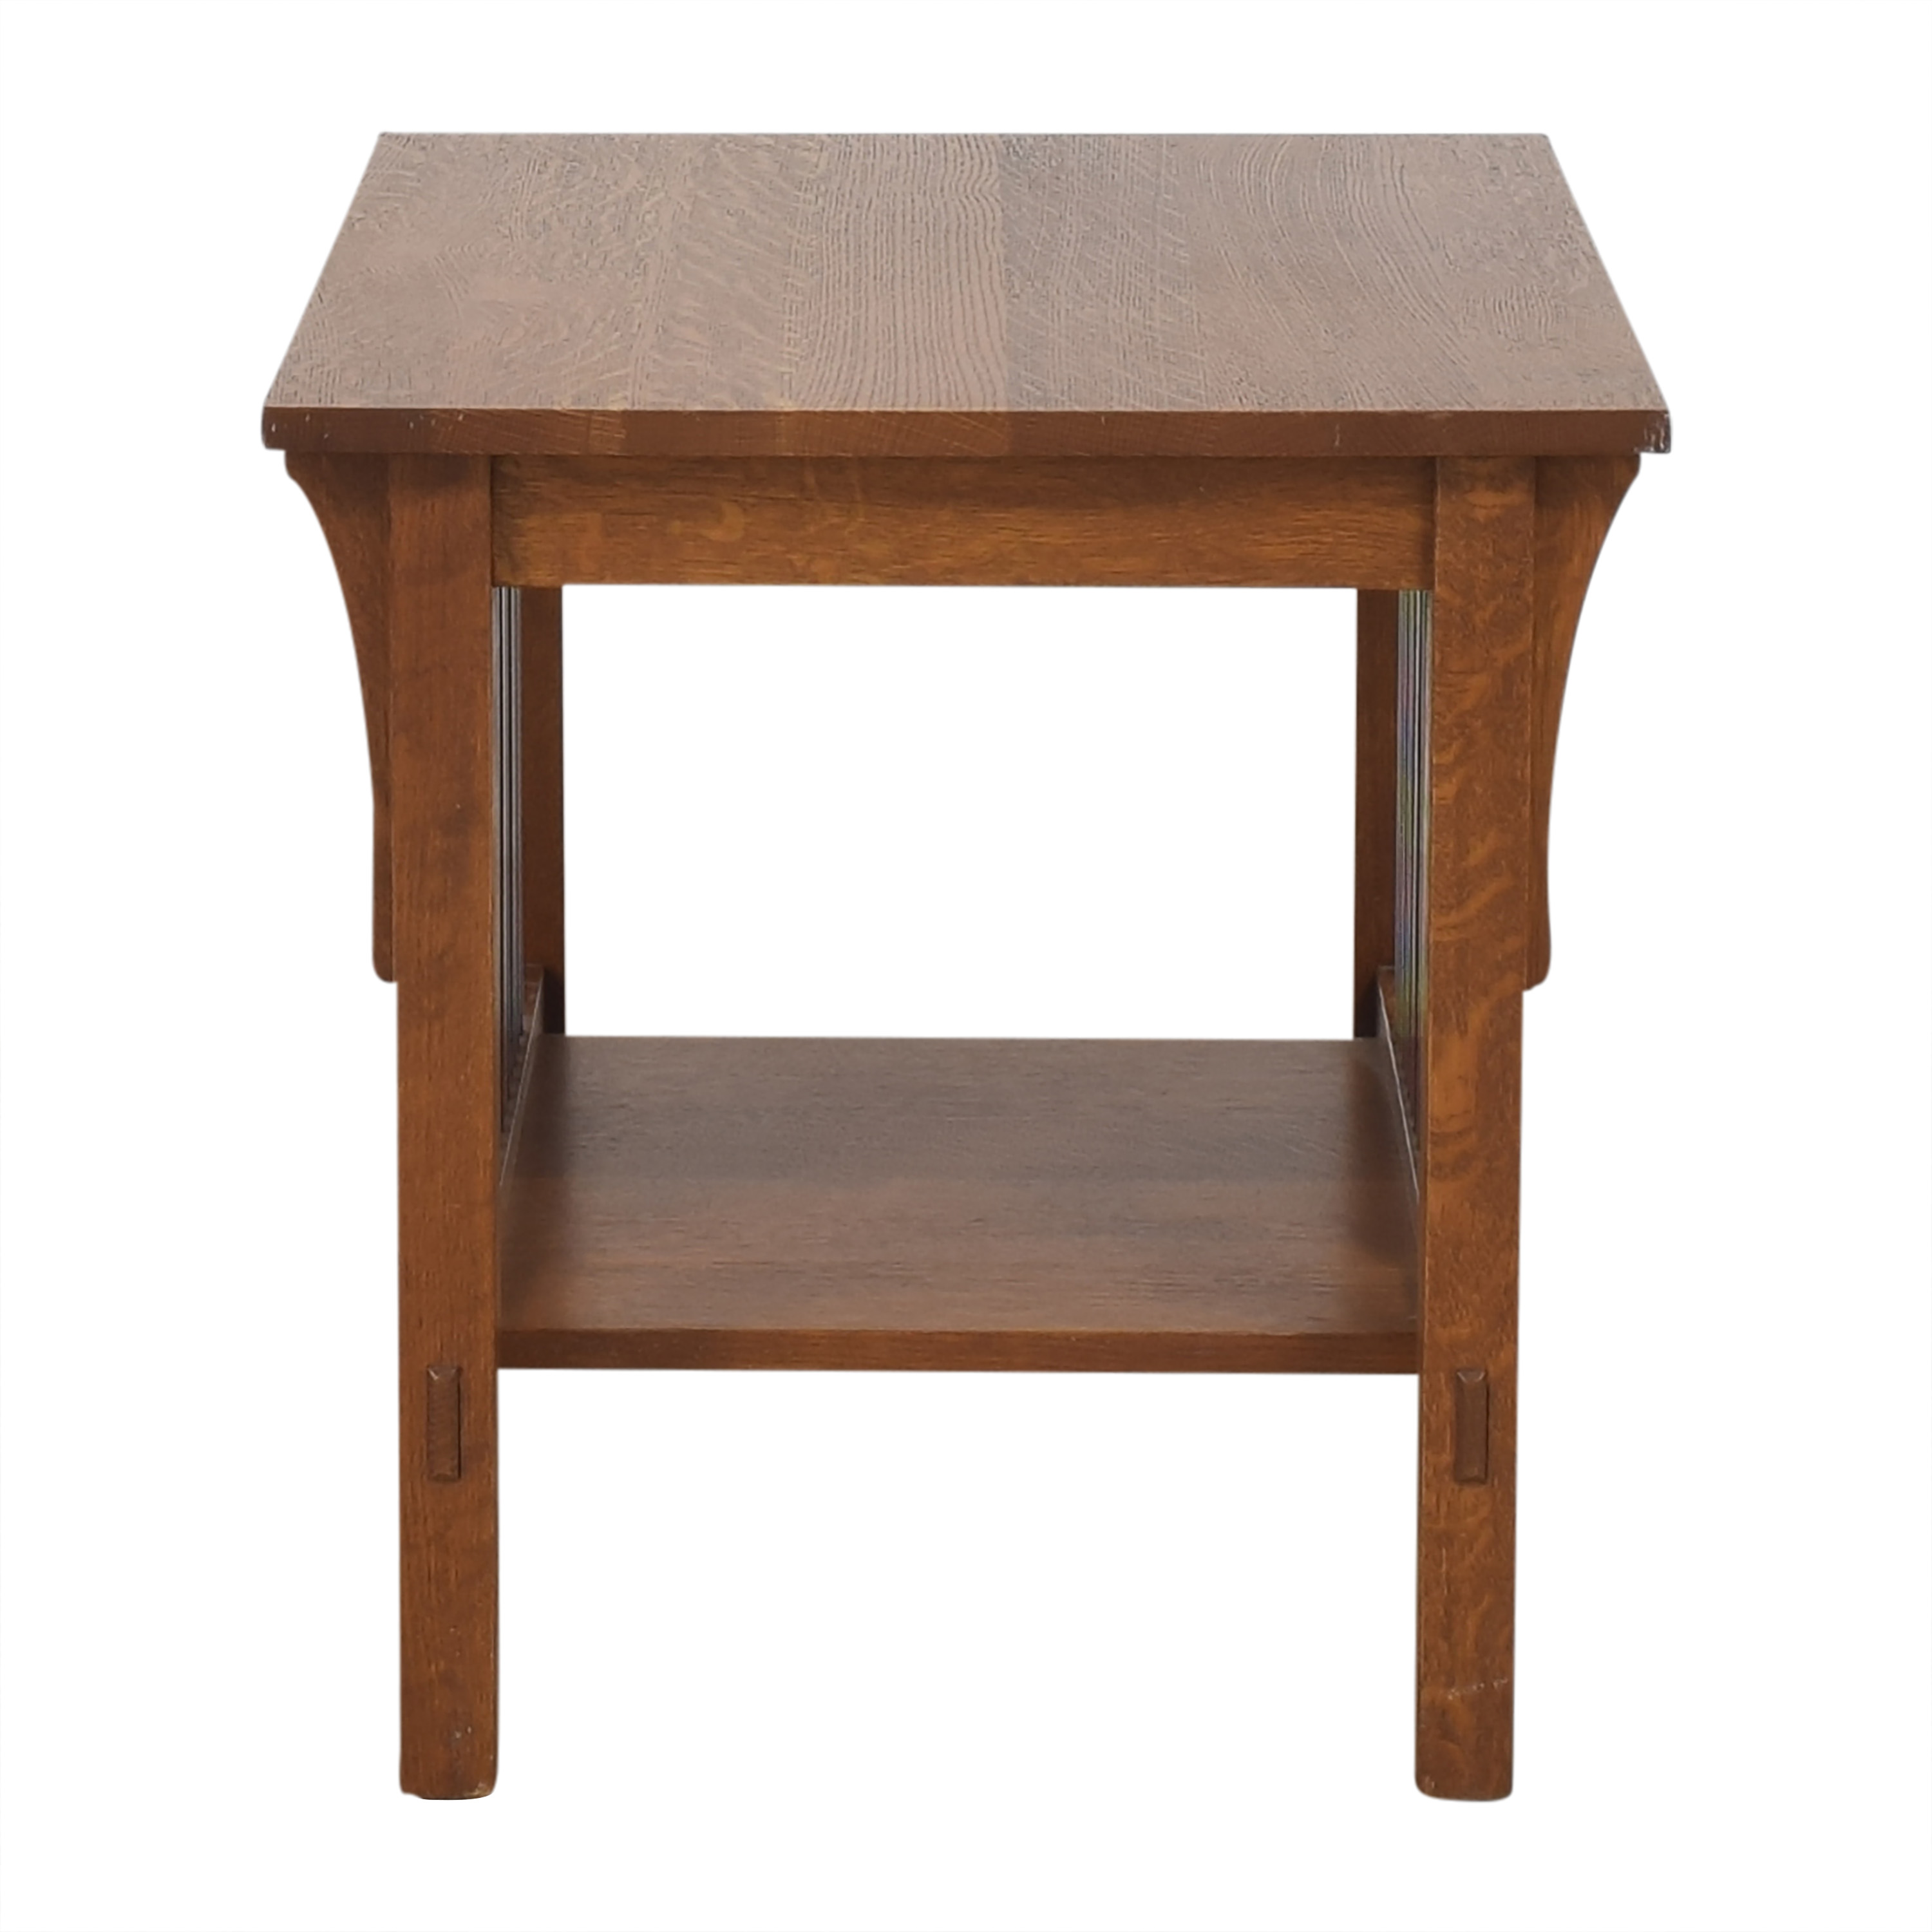 Stickley Furniture Stickley Furniture Mission-Style End Table for sale